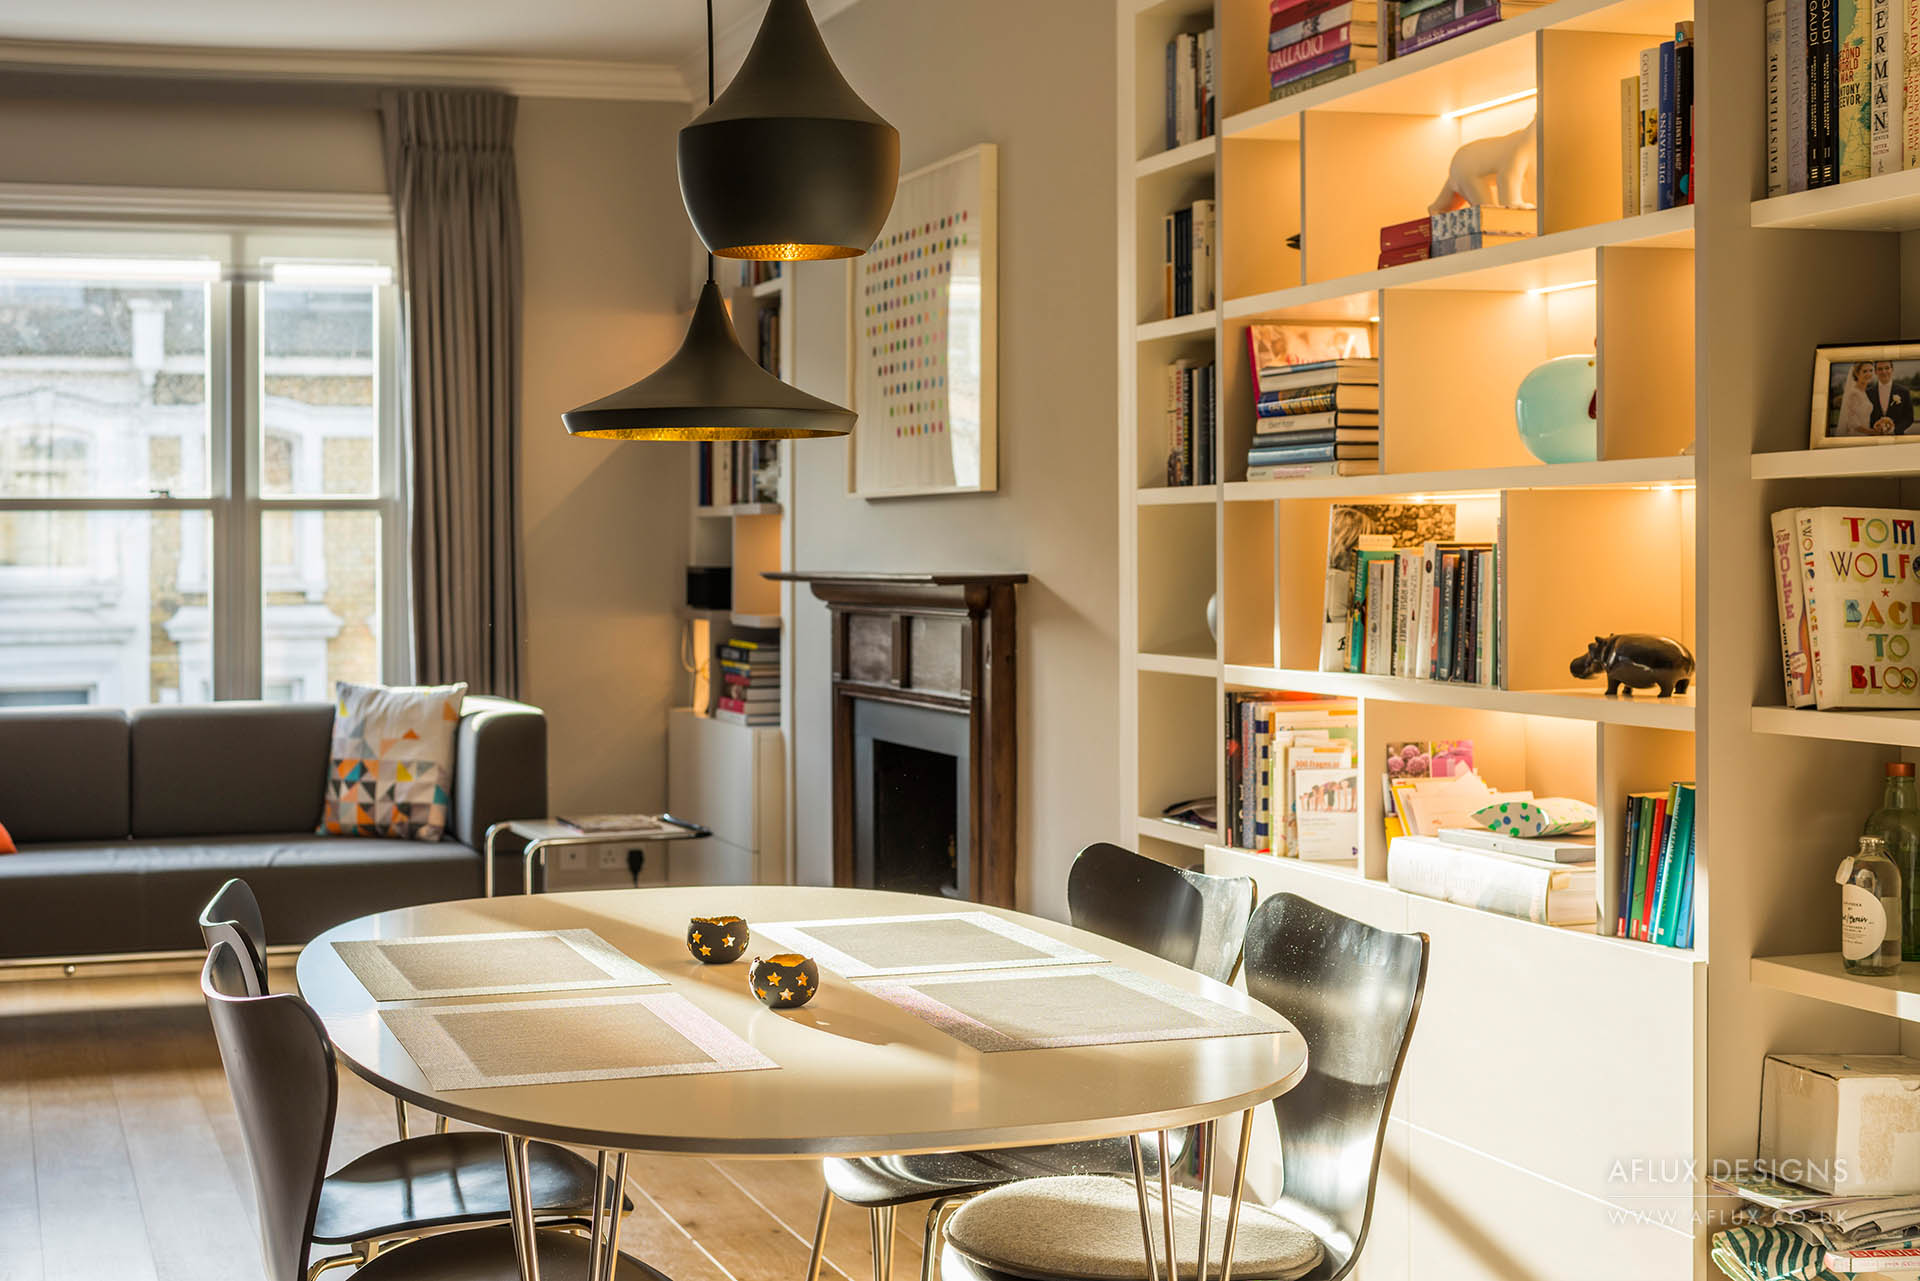 Beaufort Street - LONDON SW3Bringing the Skandi look to a Chelsea apartment. A bespoke design to maximise space, give light and increase storage for a growing family in London.